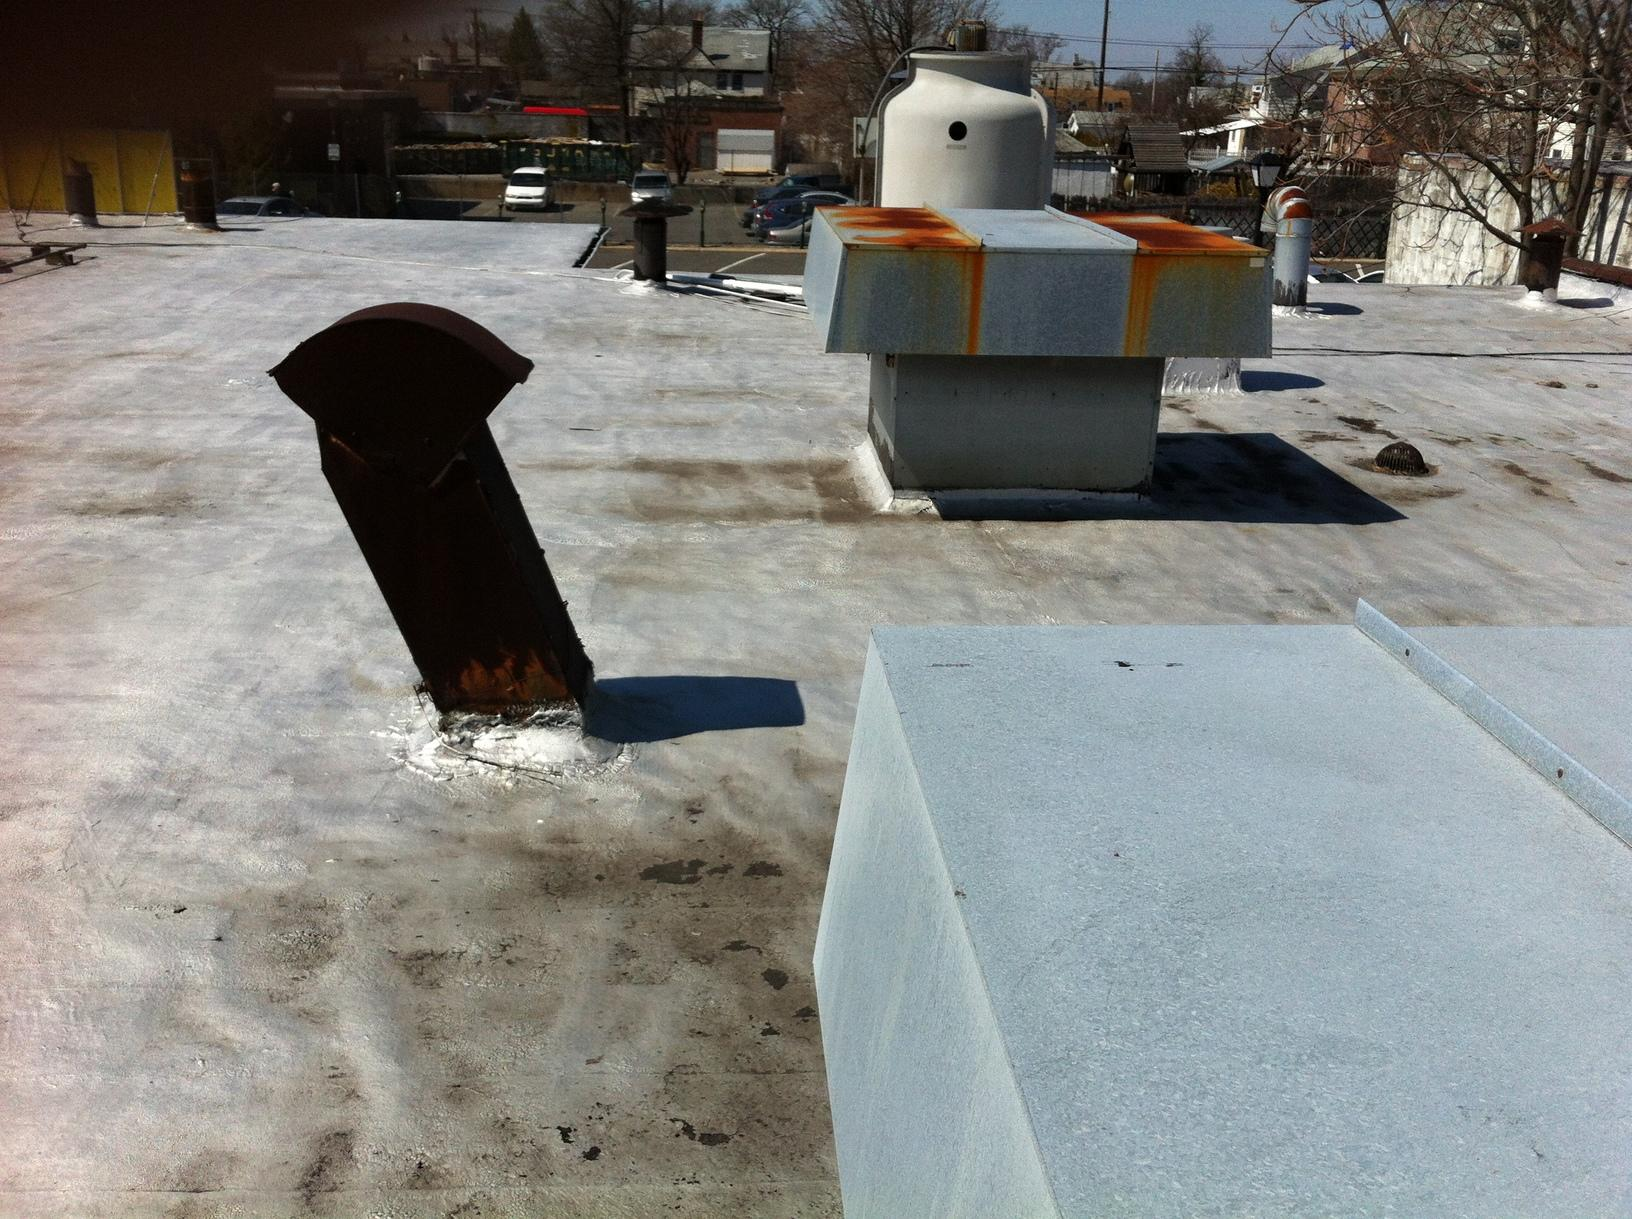 GacoFlex flat roof installation in Cedarhurst, NY - Before Photo